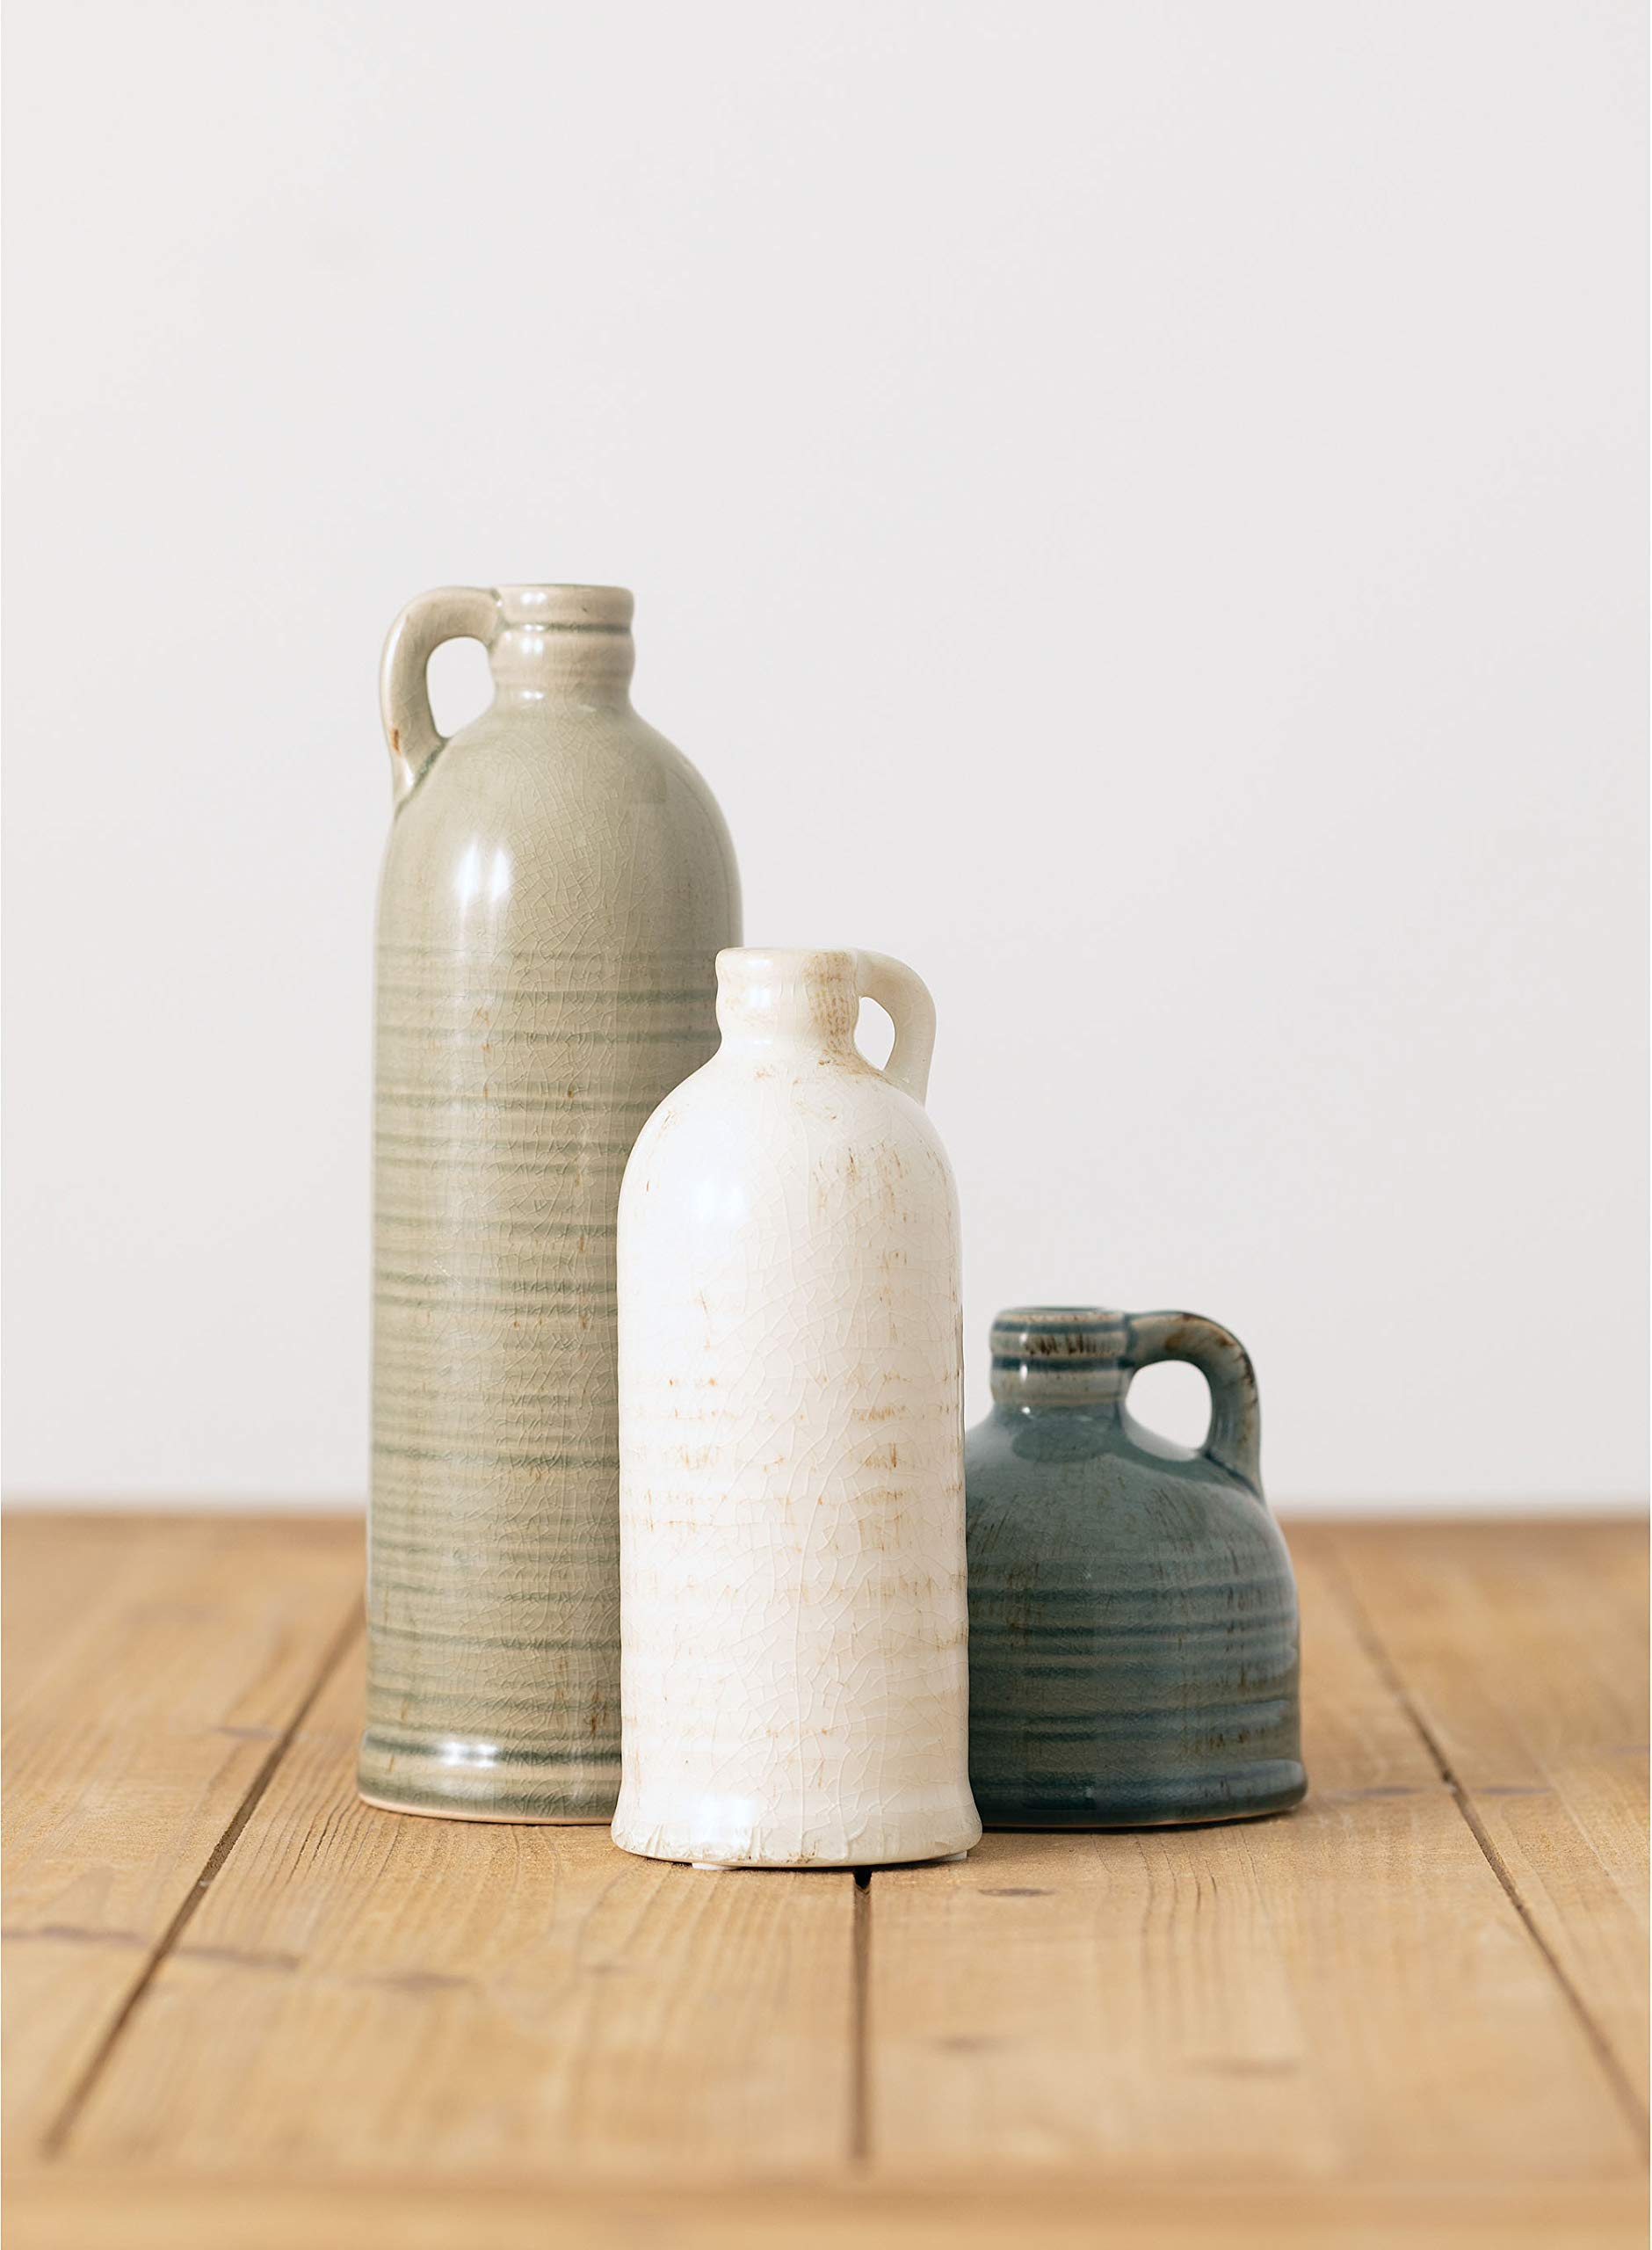 """Sullivans Modern Farmhouse Decorative Multi-Color Small Ceramic Jug Set of Three (3), 4"""", 7.5"""" & 10"""" Tall, Crackled Finish Faux Floral Jugs, Distressed Decoration for Rustic Décor, Housewarming Gift (CM2431)"""